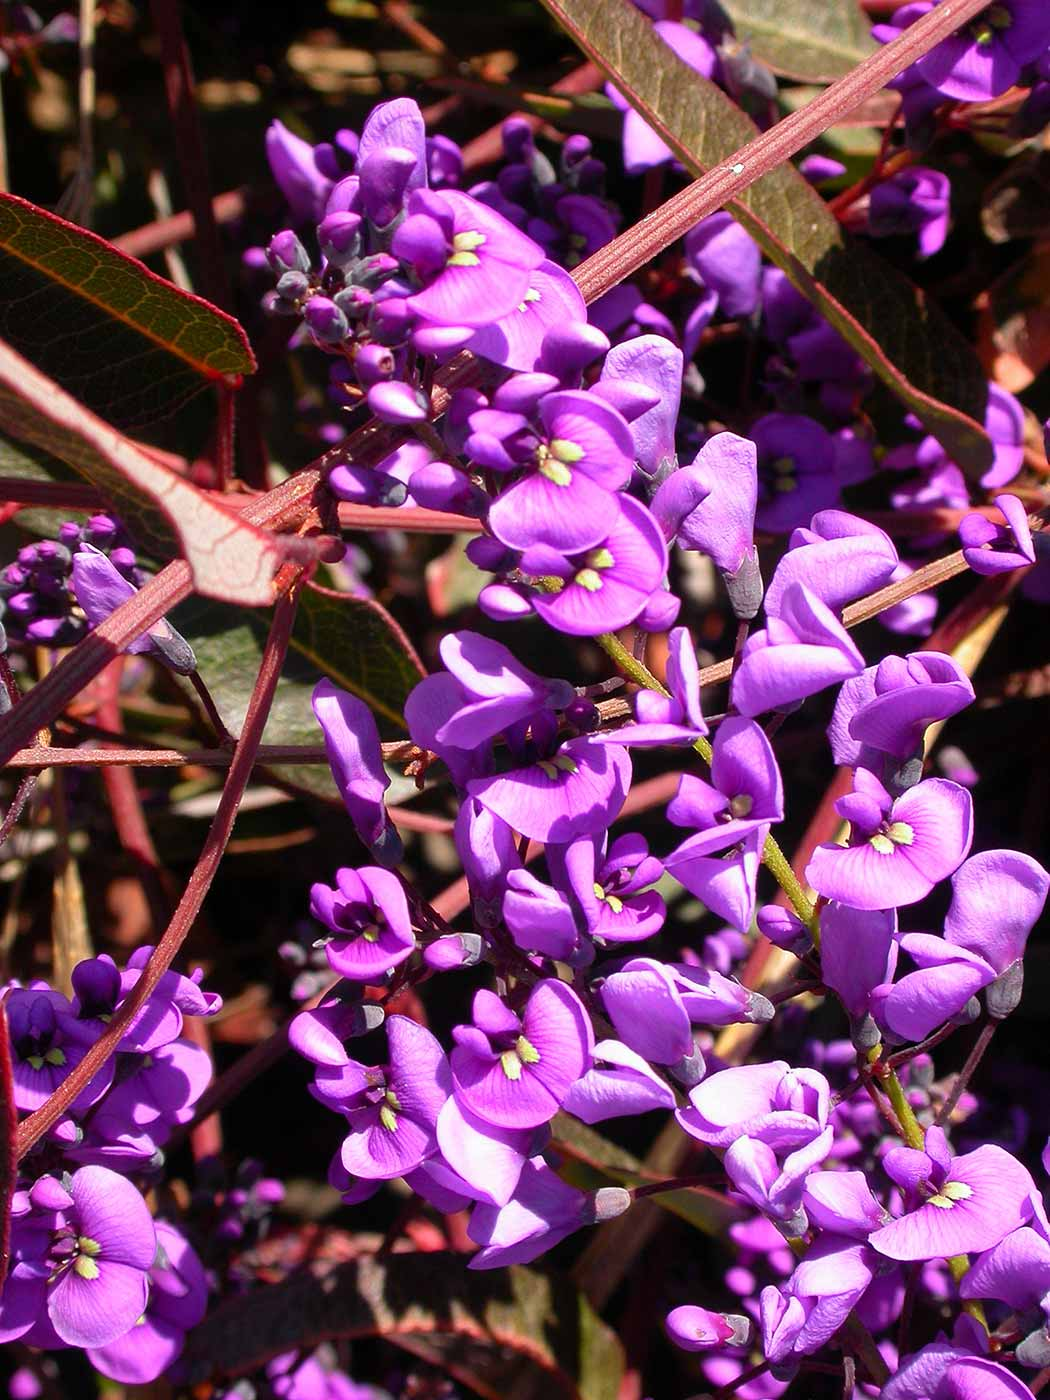 Purple flowers. - click to view larger image